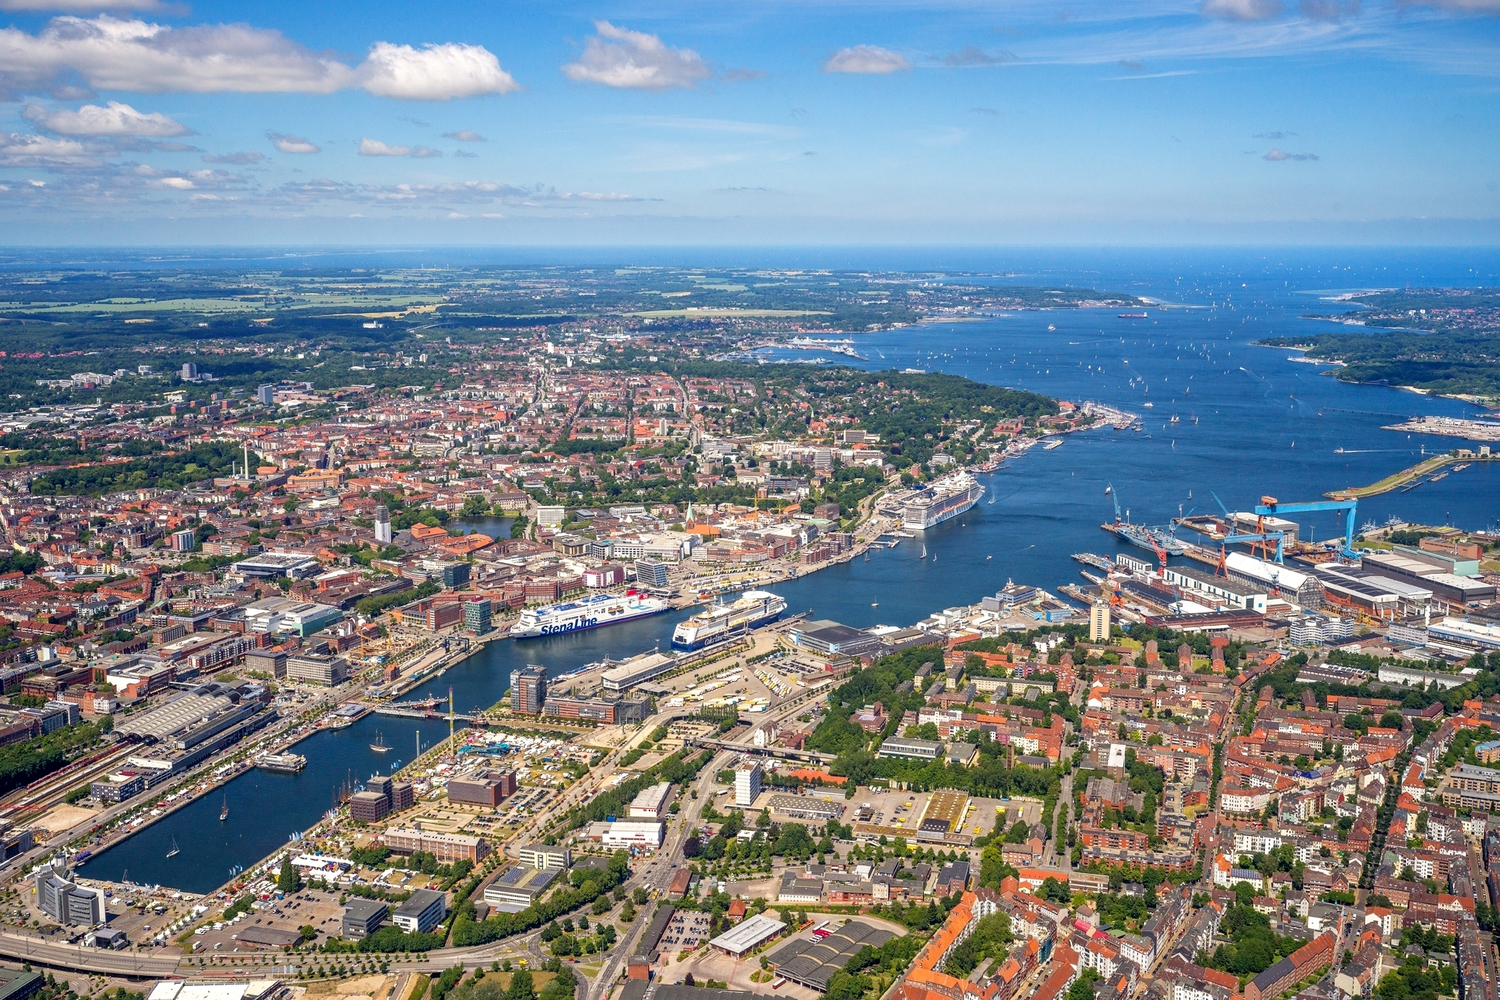 Kiel to become bigger, more multimodal, and eco-friendlier